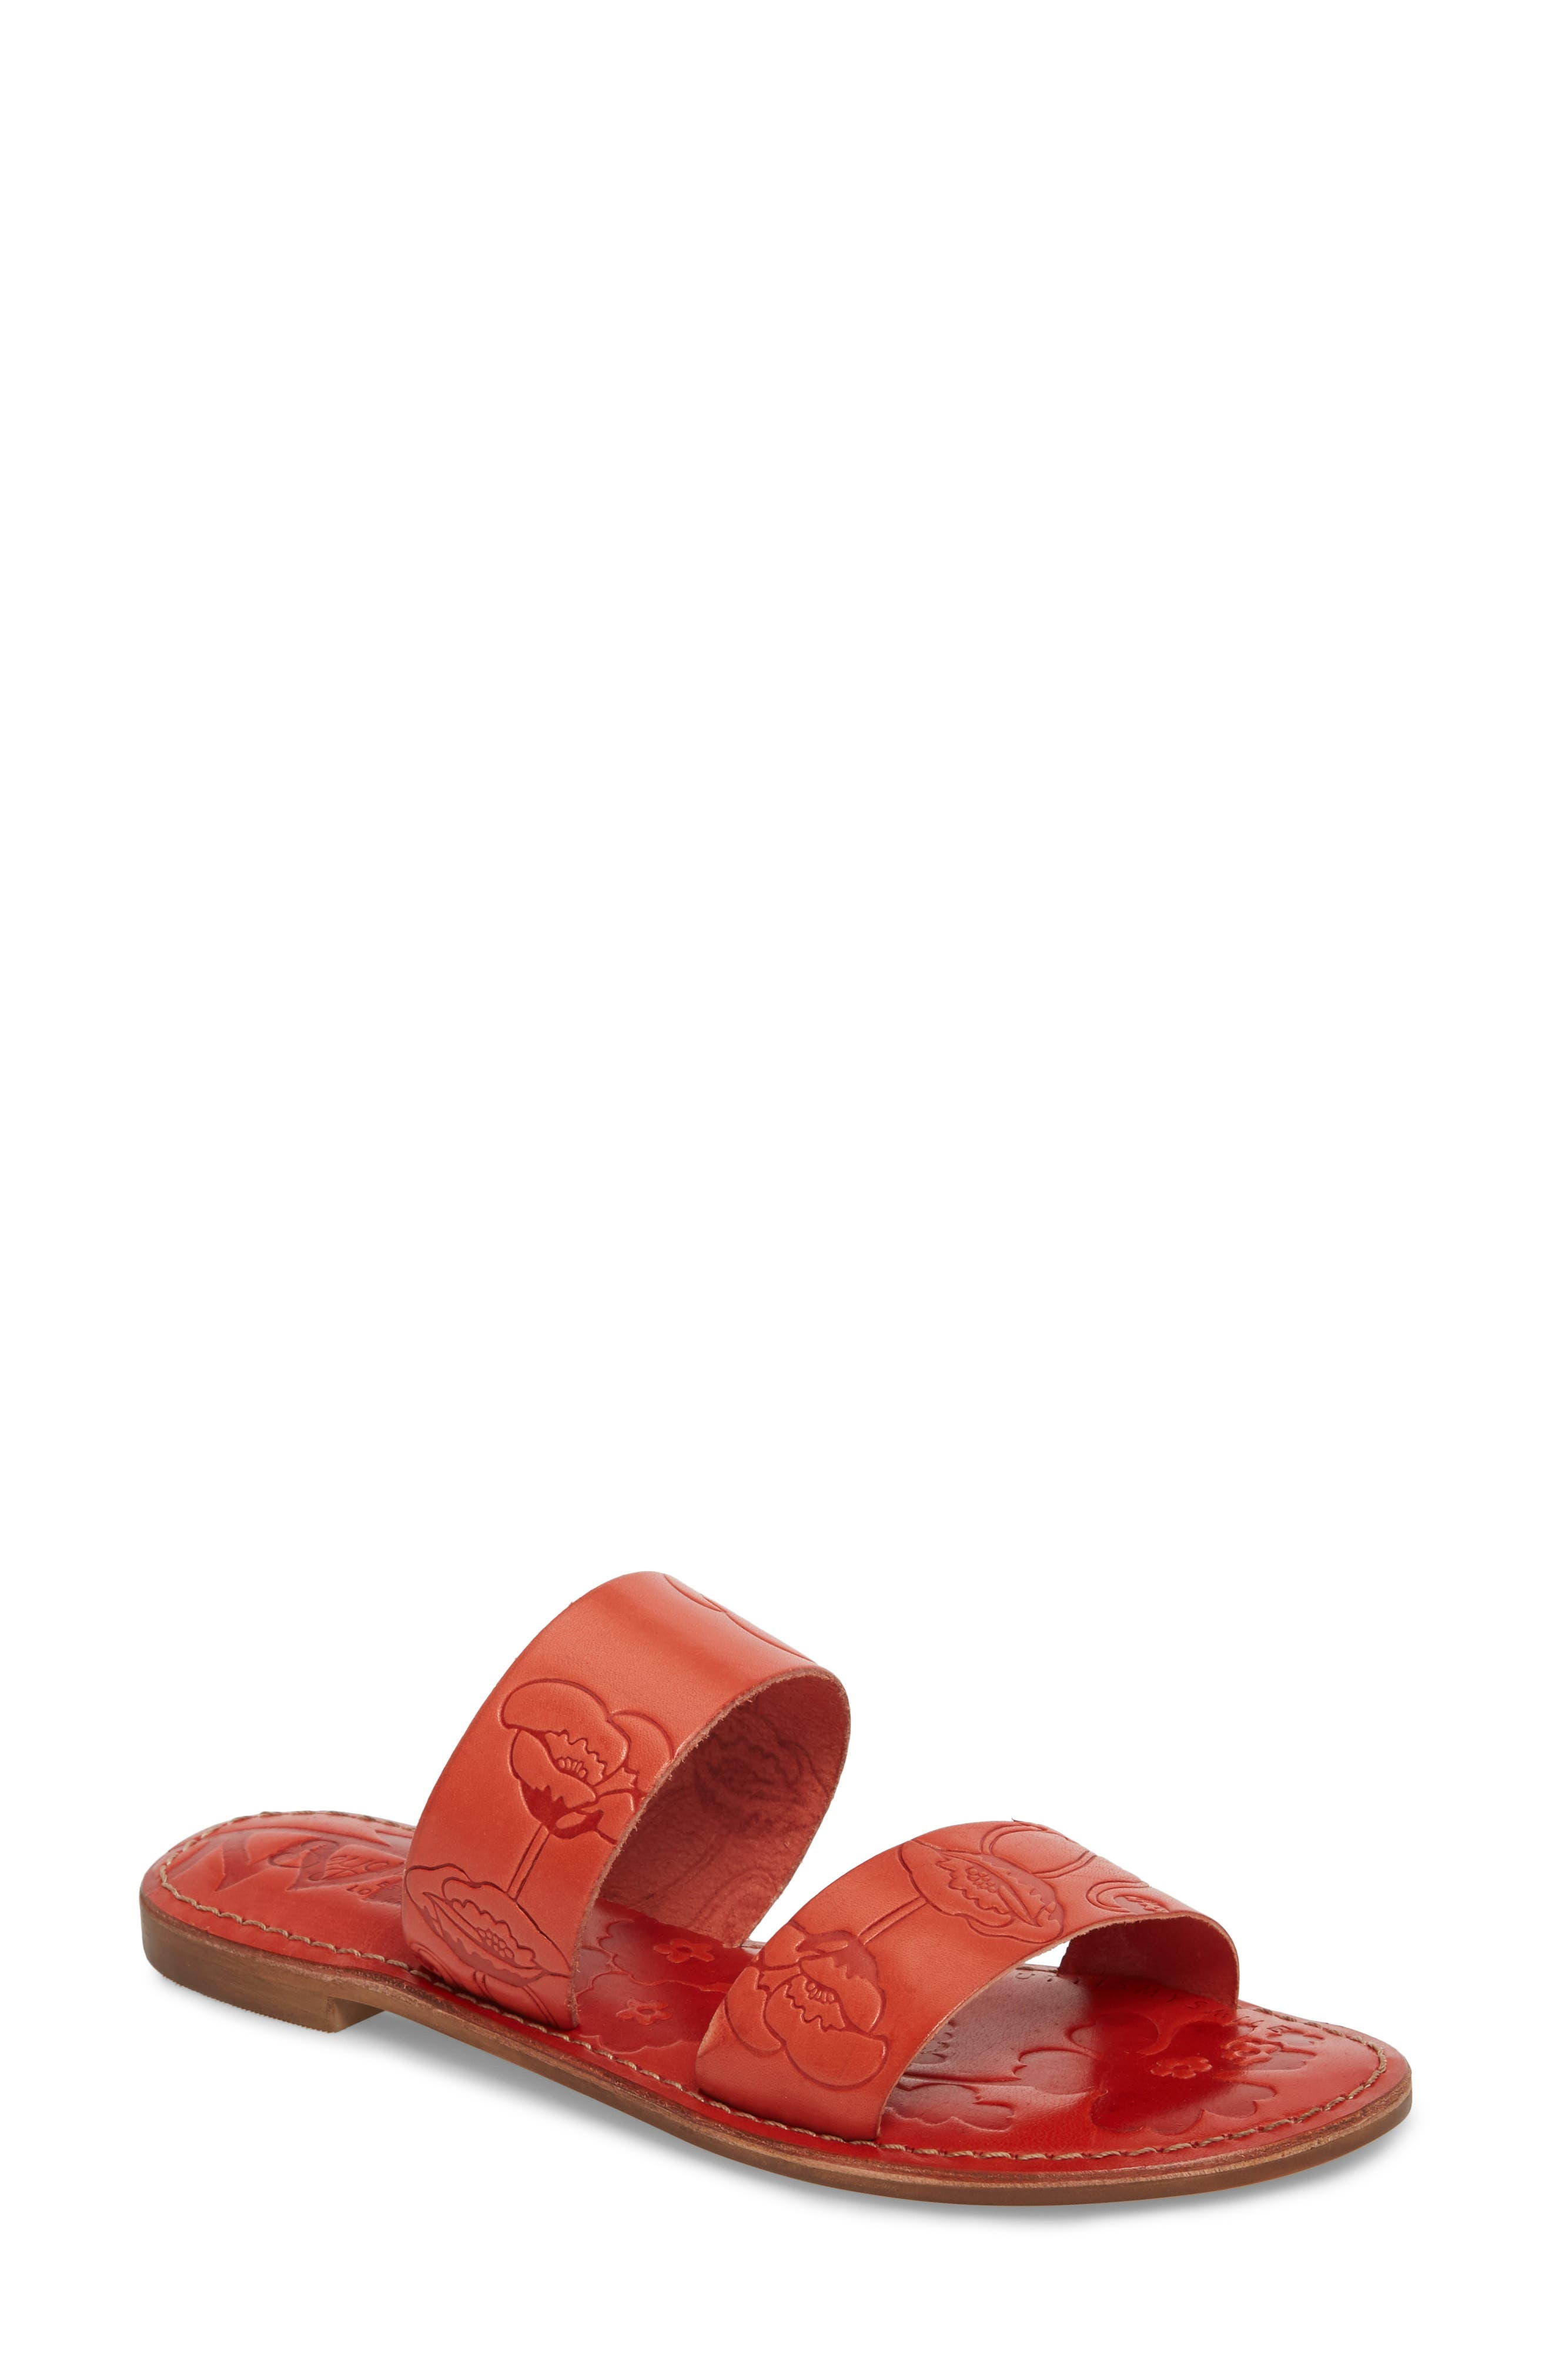 Sheroes Slide Sandal,                         Main,                         color, Red Leather